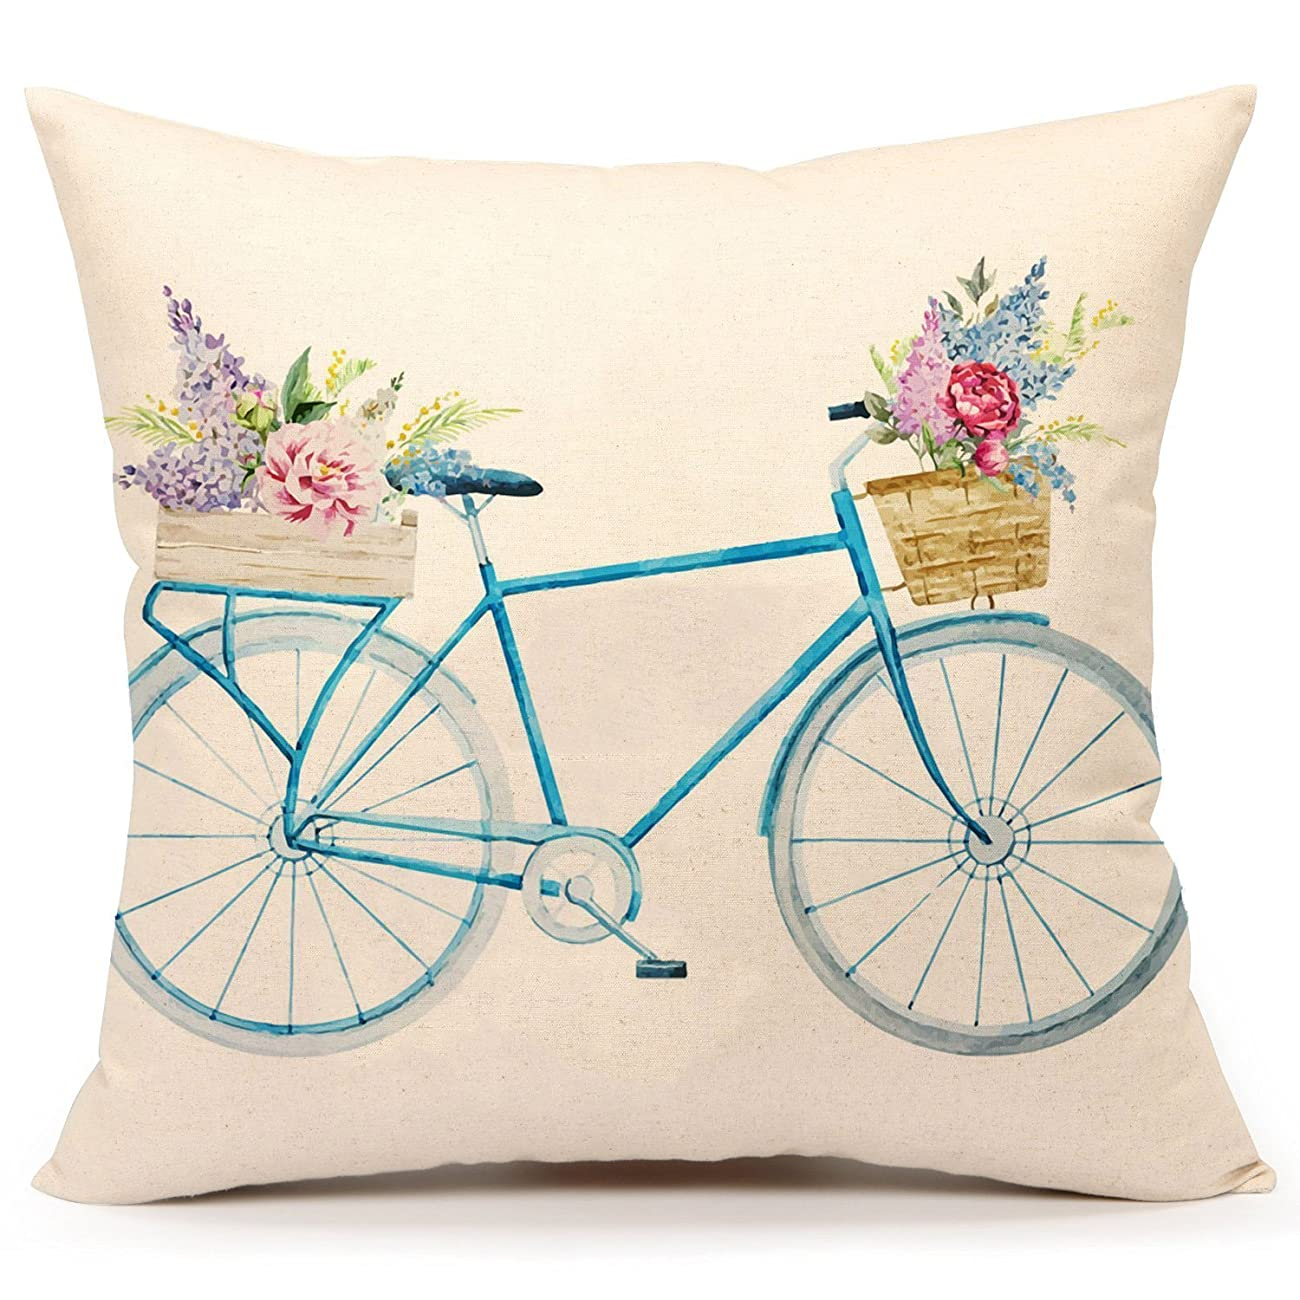 Watercolor Retro Bicycle and Flowers Vintage Home Decor Design Throw Pillow Case 18 x 18 Inch Cotton Linen for Sofa (blue) 0